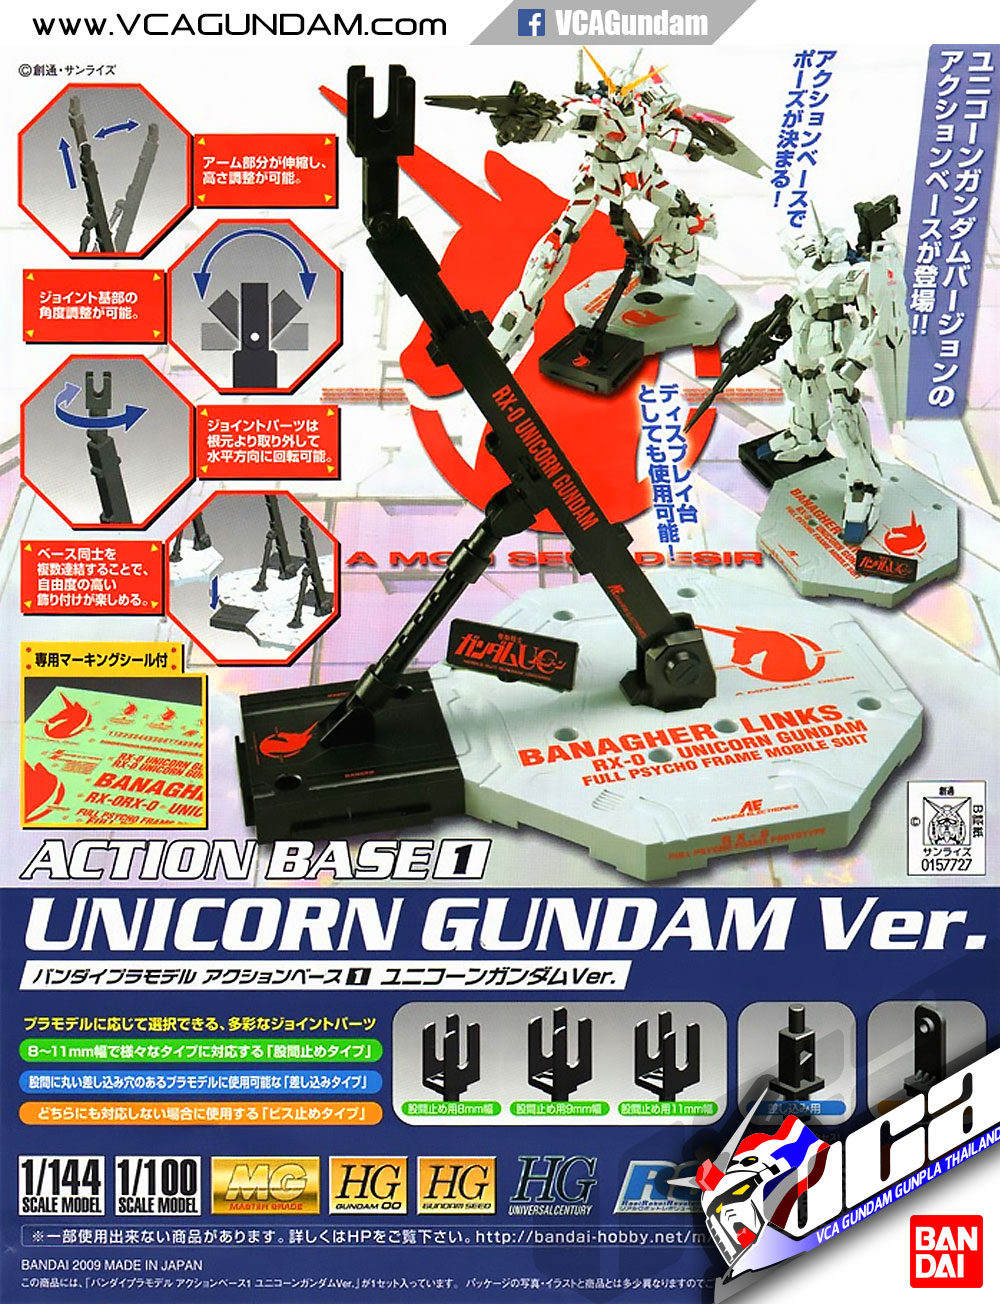 ACTION BASE 1 UNICORN GUNDAM VER